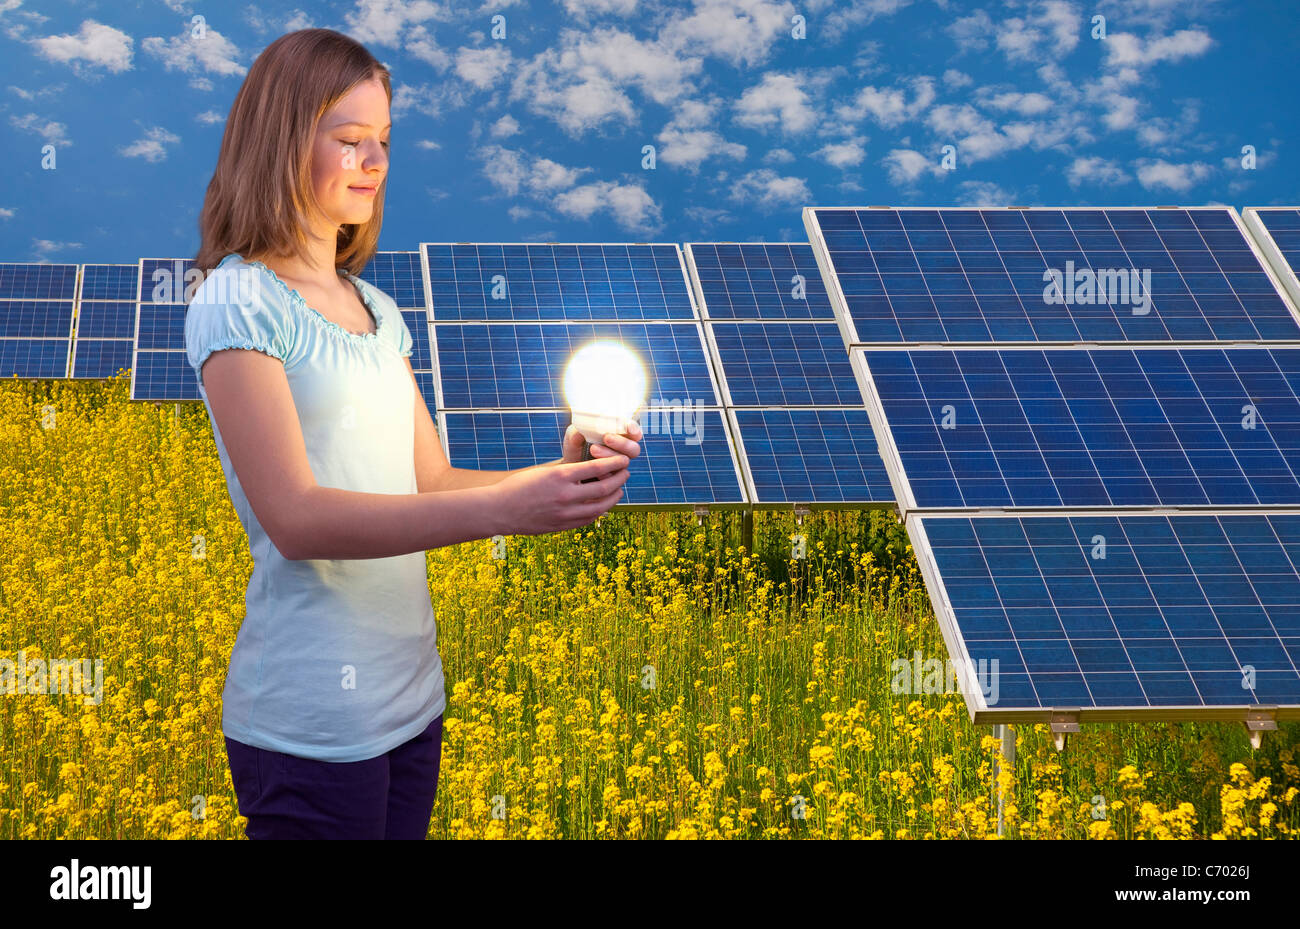 Woman with lightbulb and solar panels - Stock Image